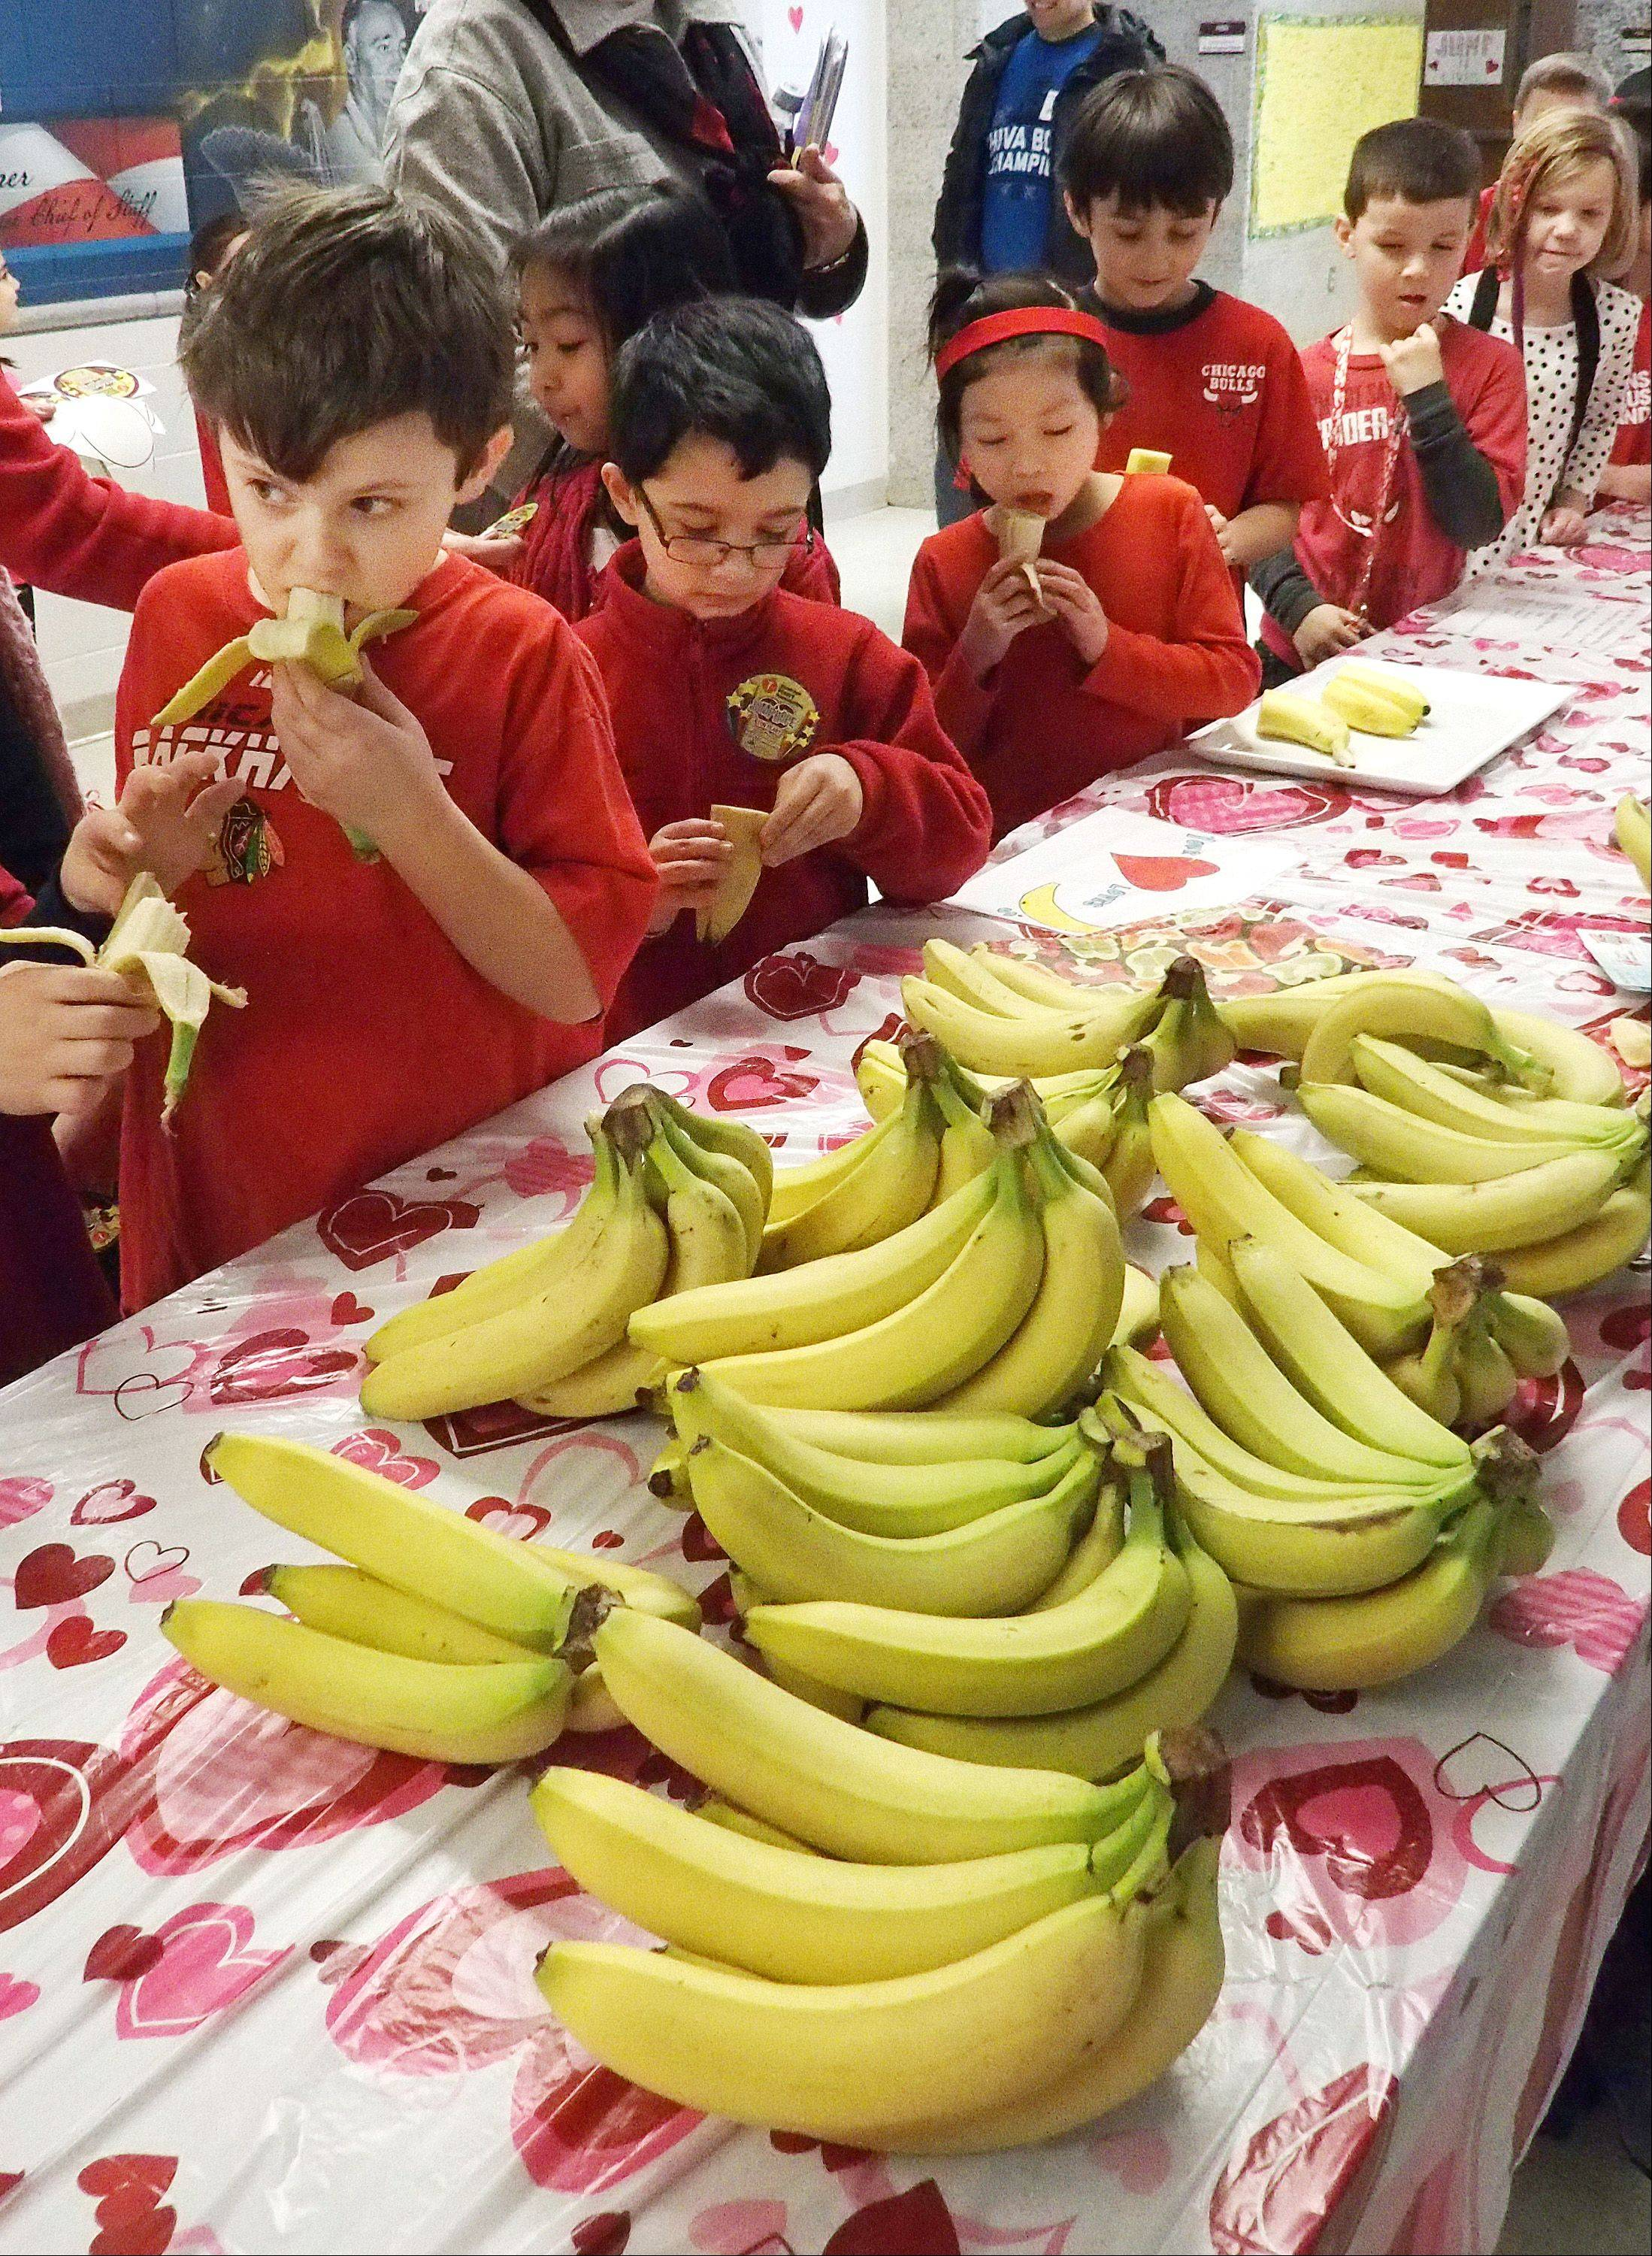 After the kids were finished jumping around, they were treated to bananas provided by Trader Joe's in Glen Ellyn to help rebuild their energy.